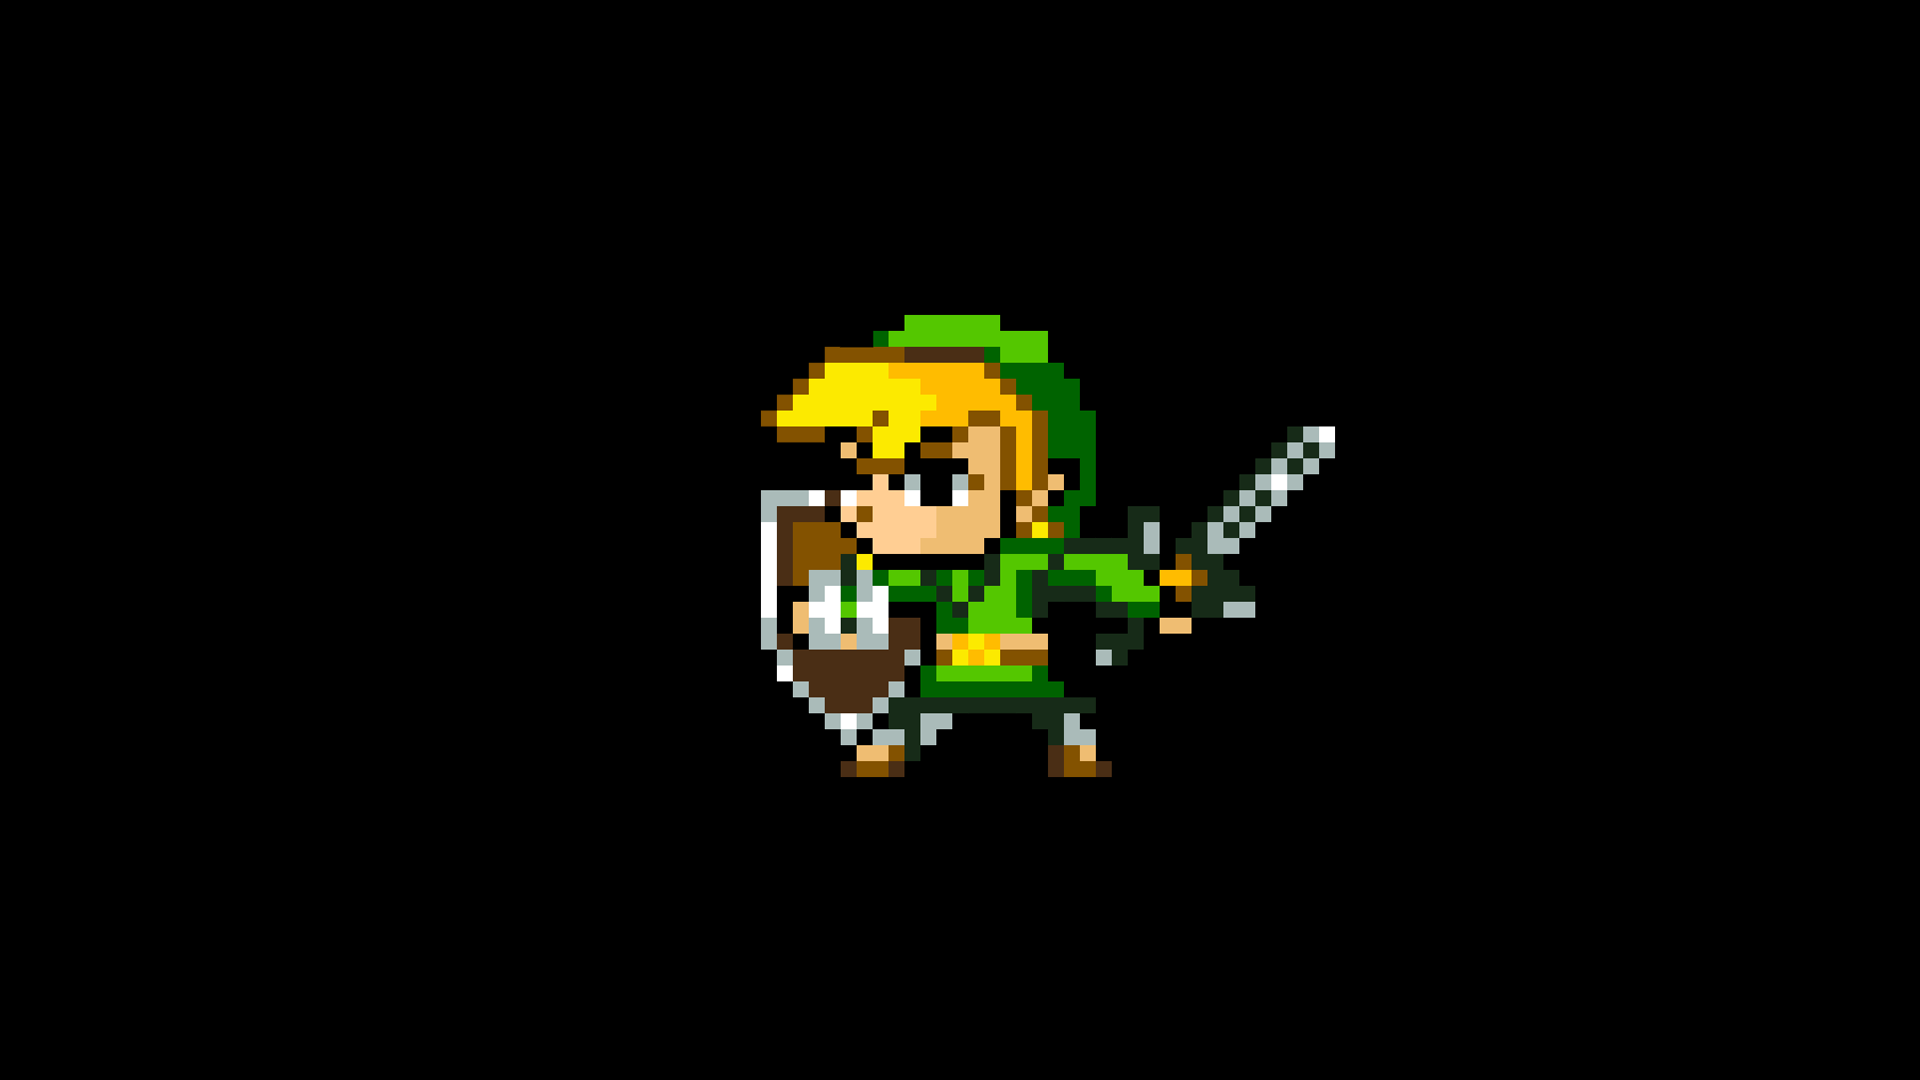 8bit Link  Zelda amp Video Games Background Wallpapers on